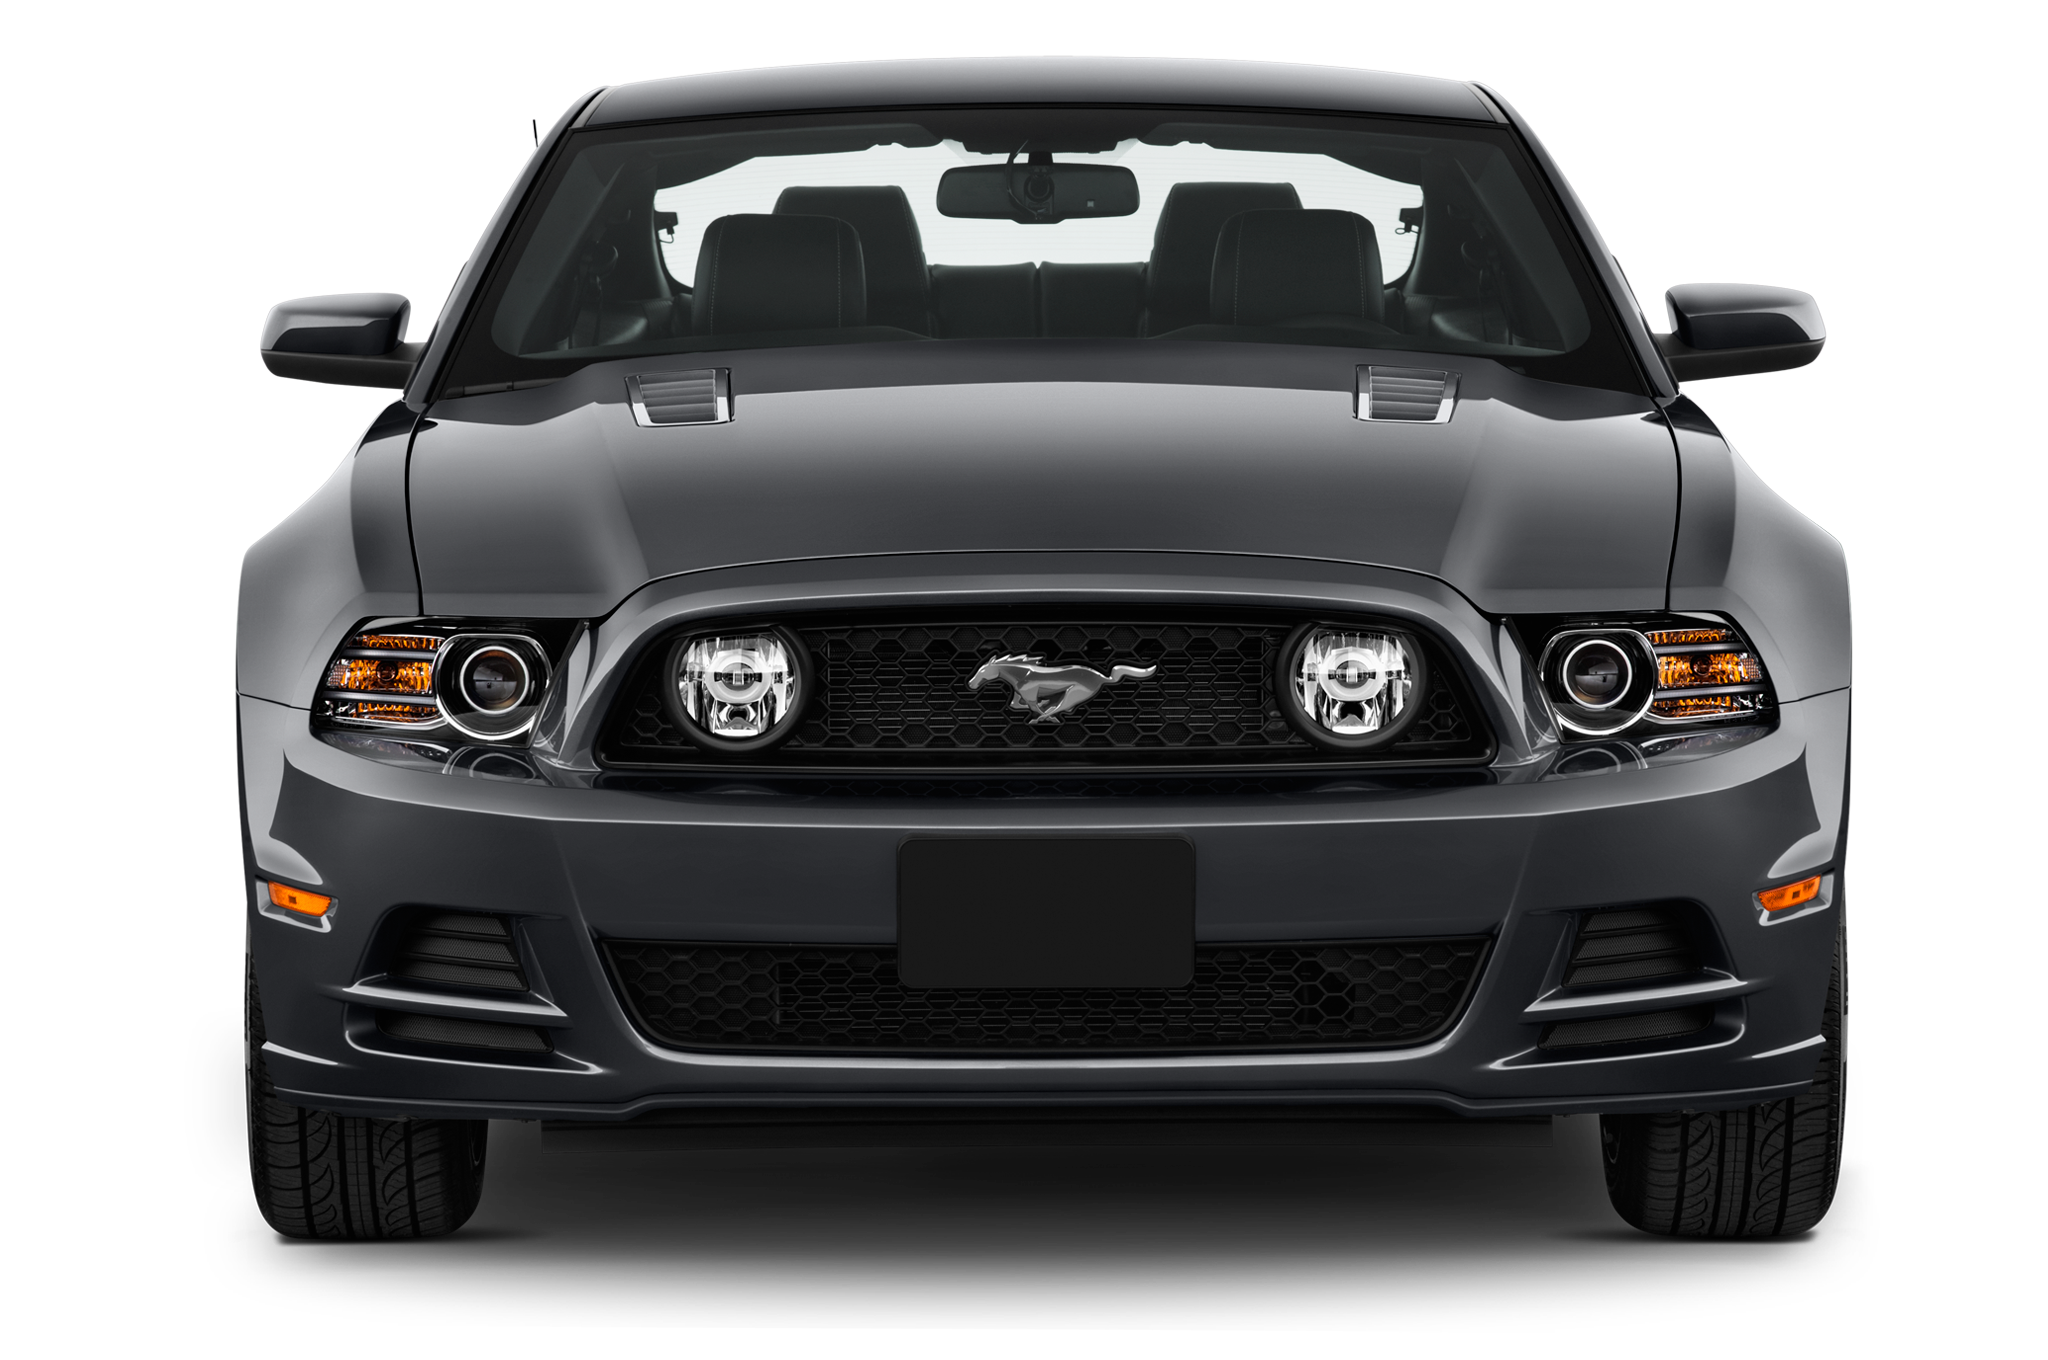 2005 2009 mustang gets shelby wide body kit. Black Bedroom Furniture Sets. Home Design Ideas